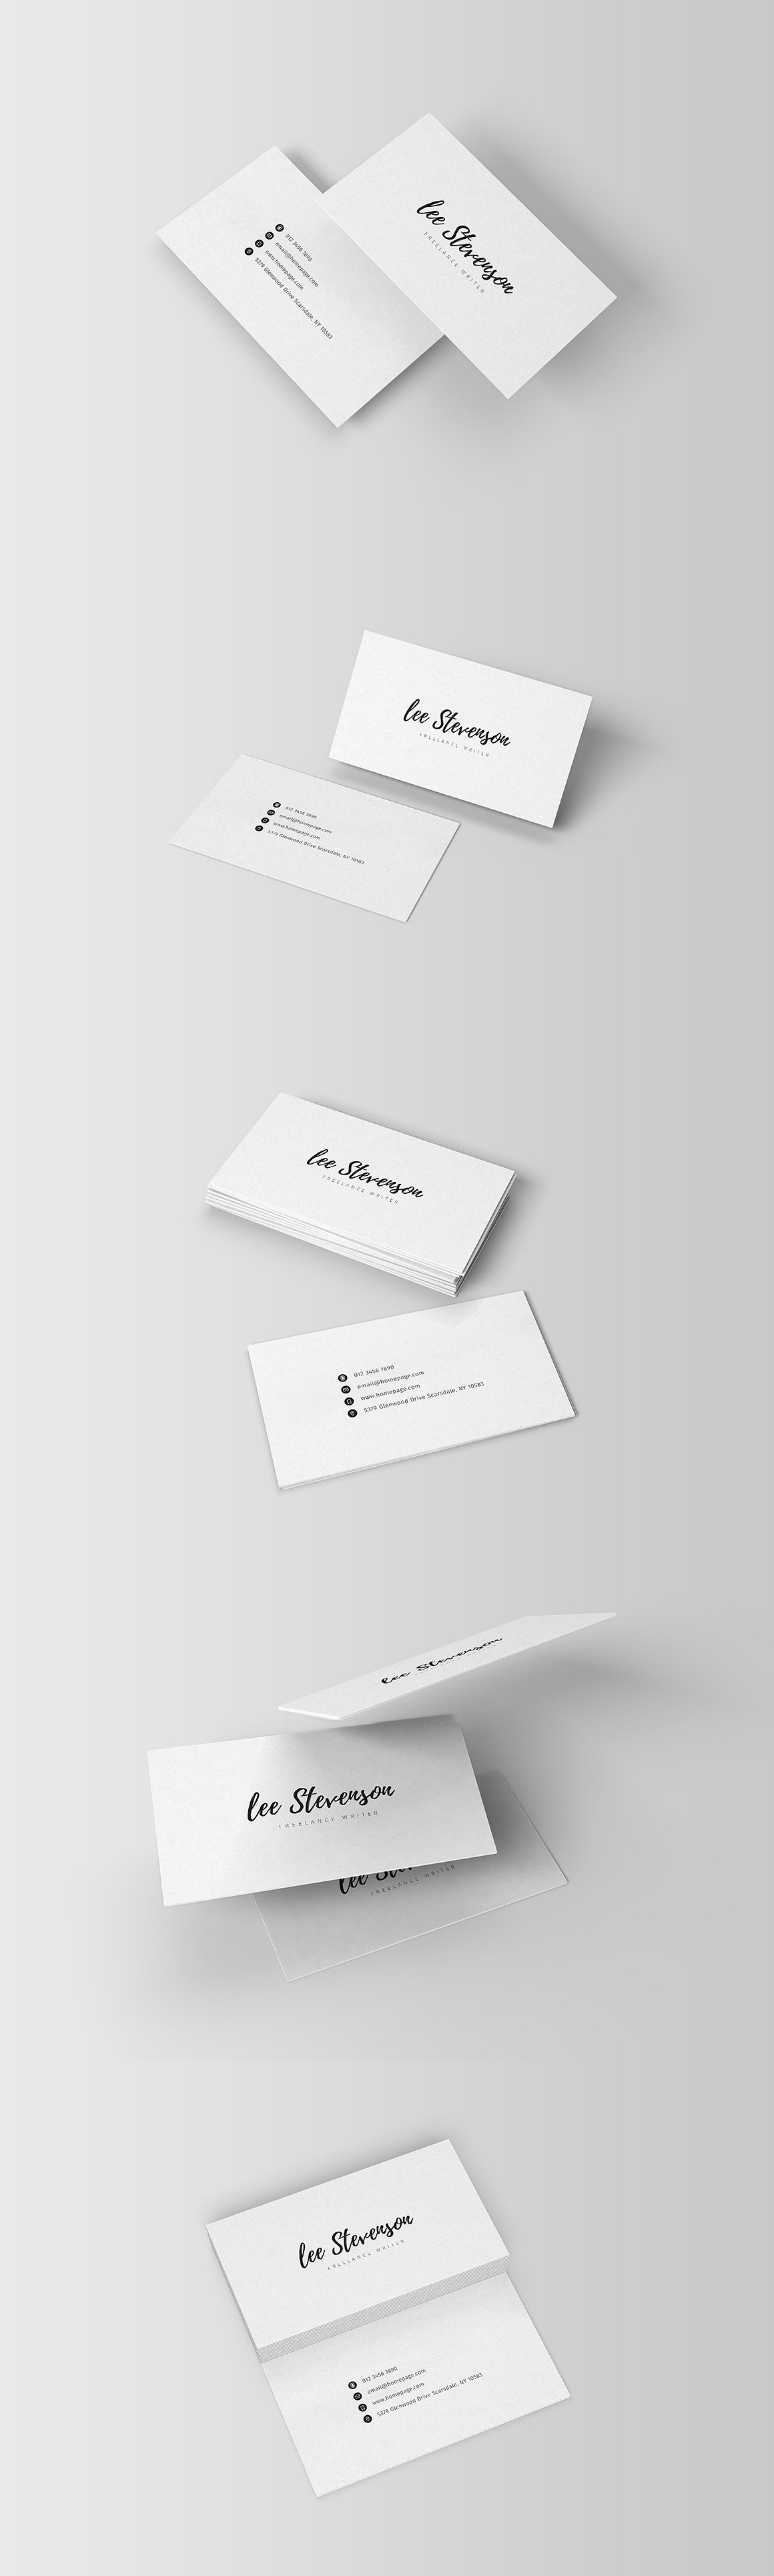 Freelancer business card iii business cards card templates and freelancer business card iii flashek Choice Image